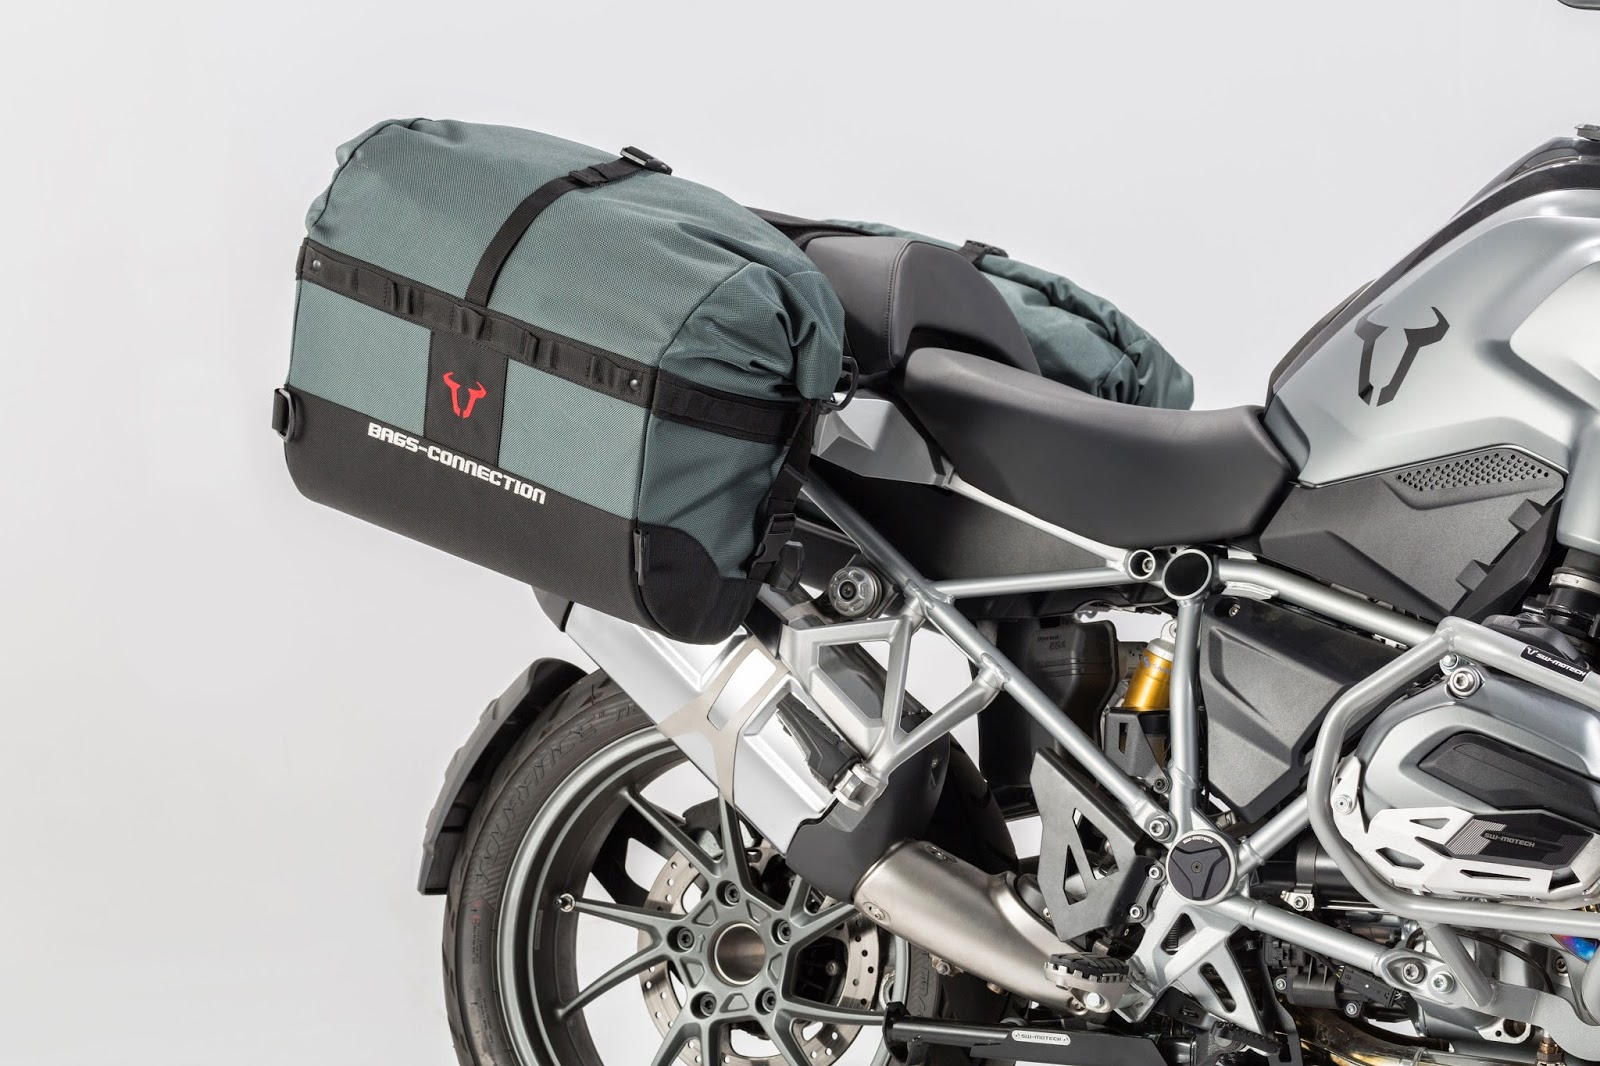 New SW-Motech soft, waterproof 'Dakar' panniers